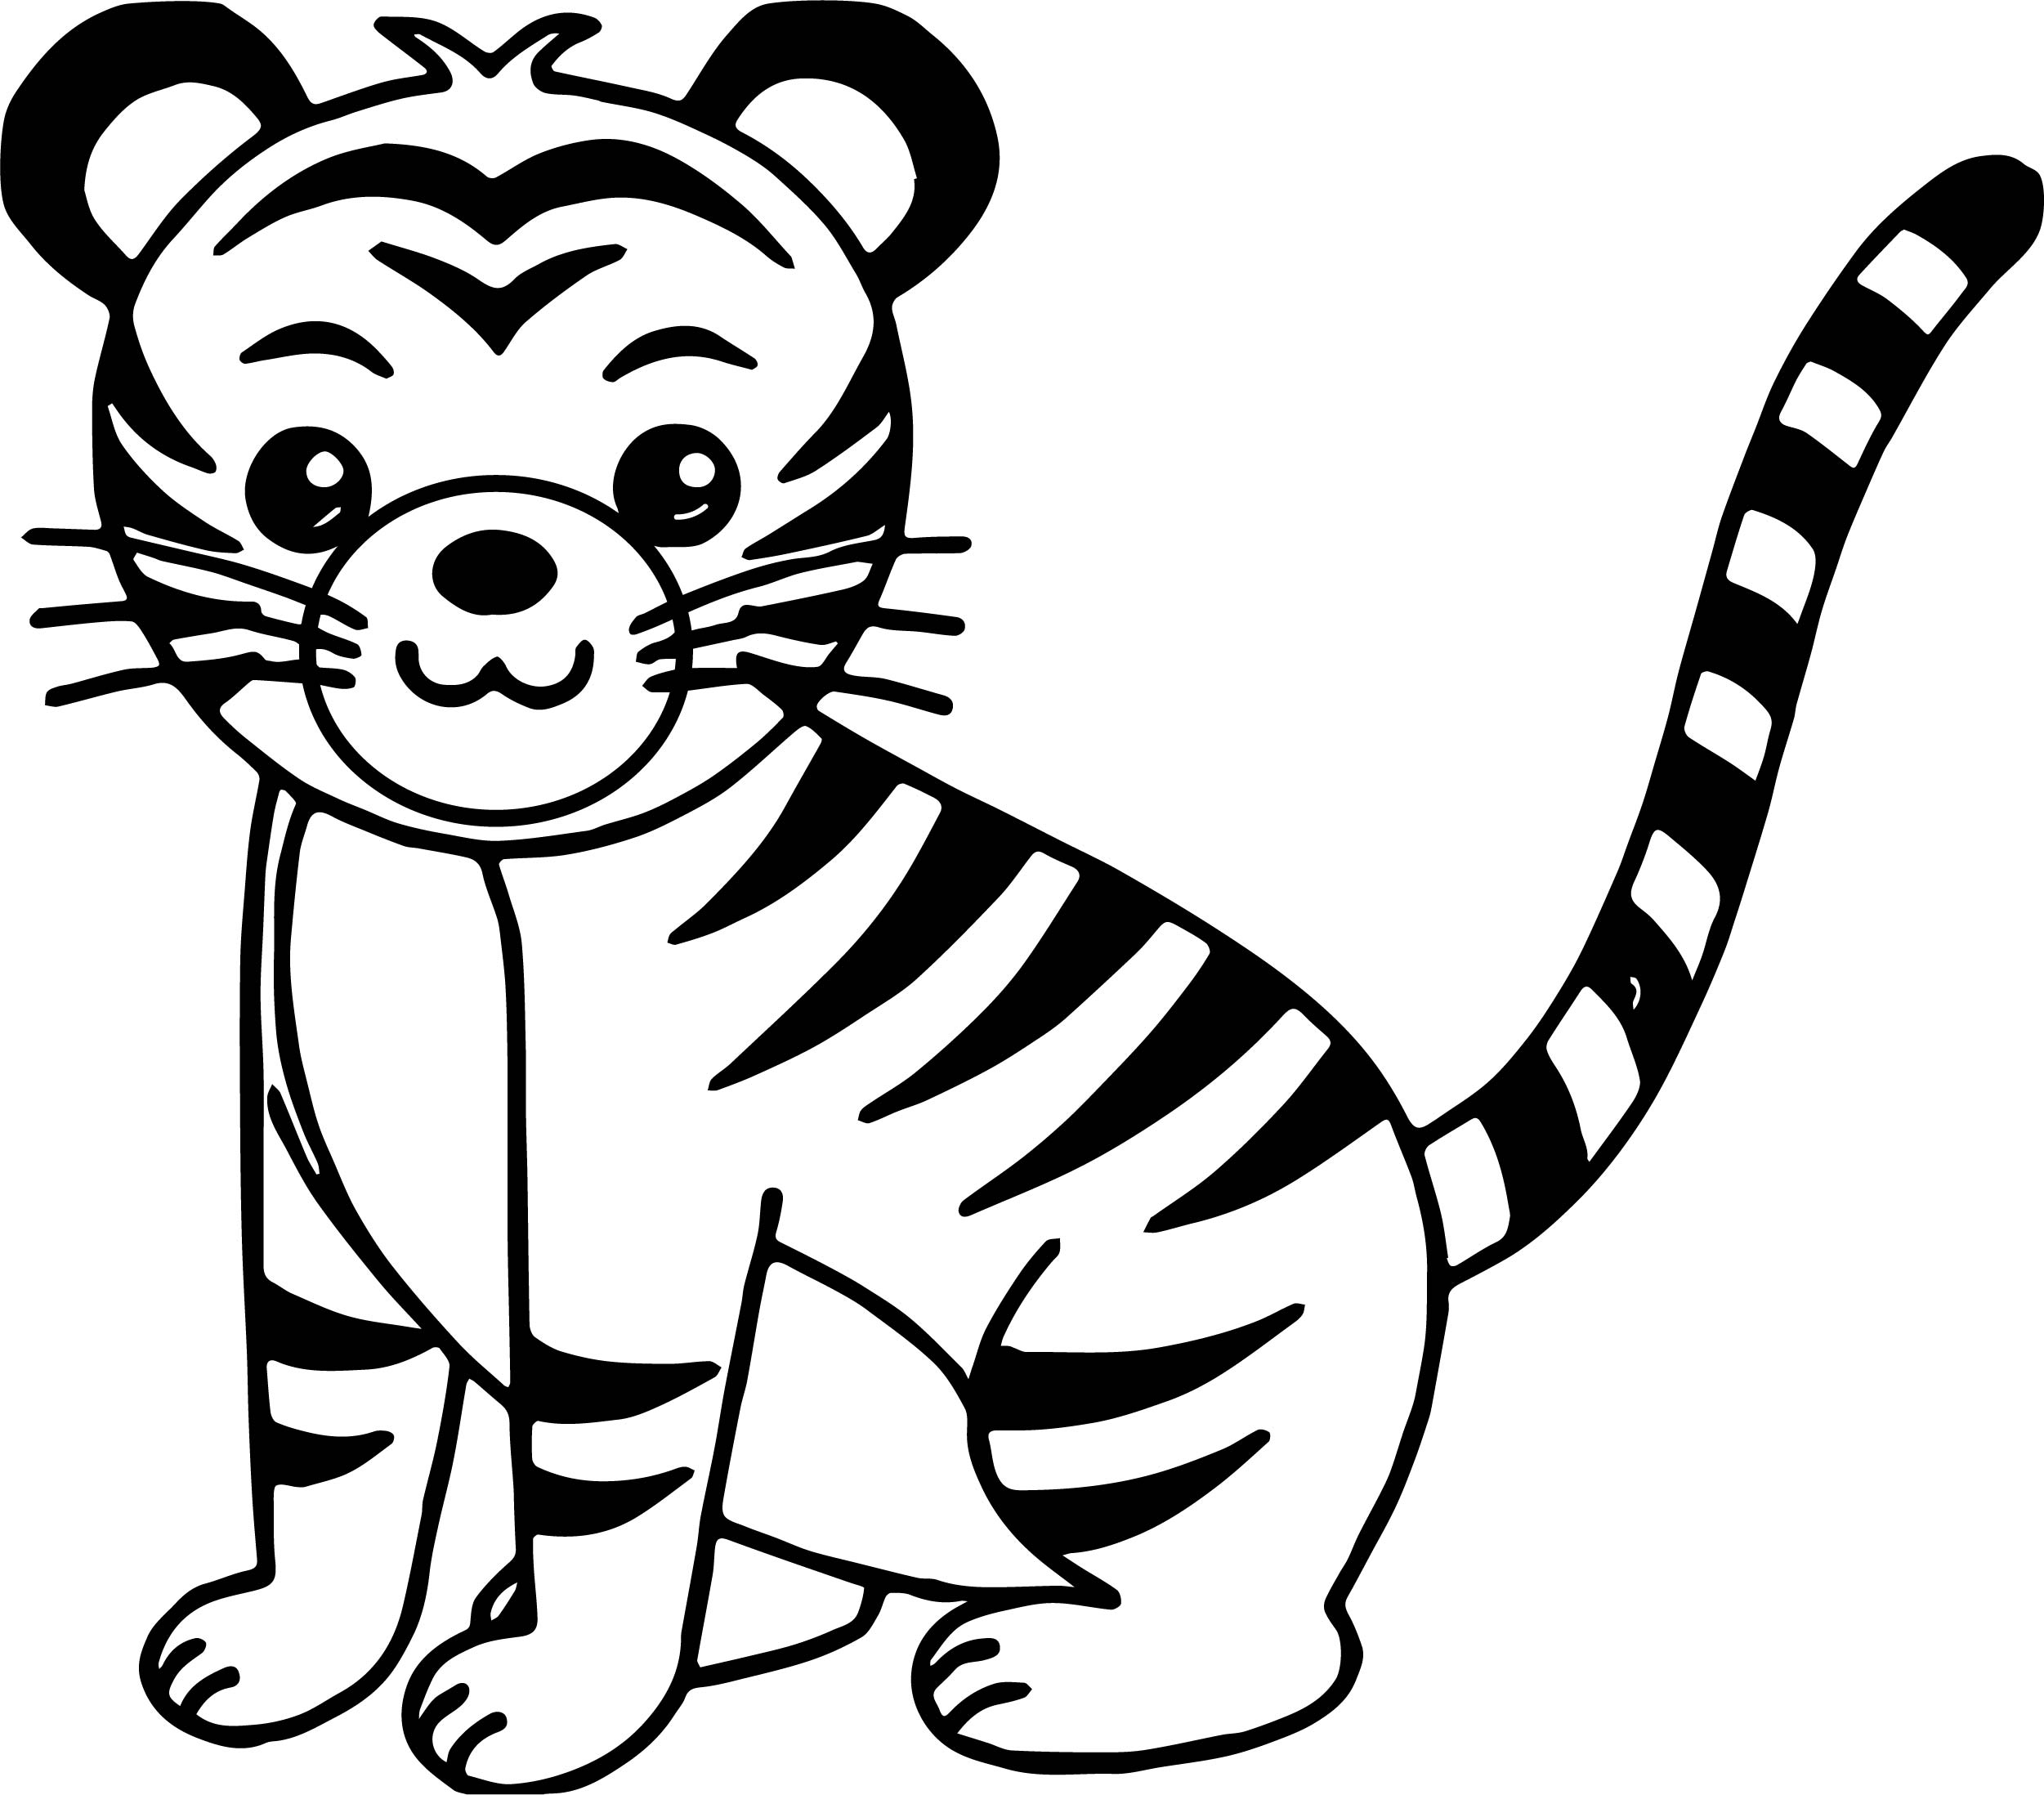 coloring page tiger free tiger coloring pages coloring tiger page